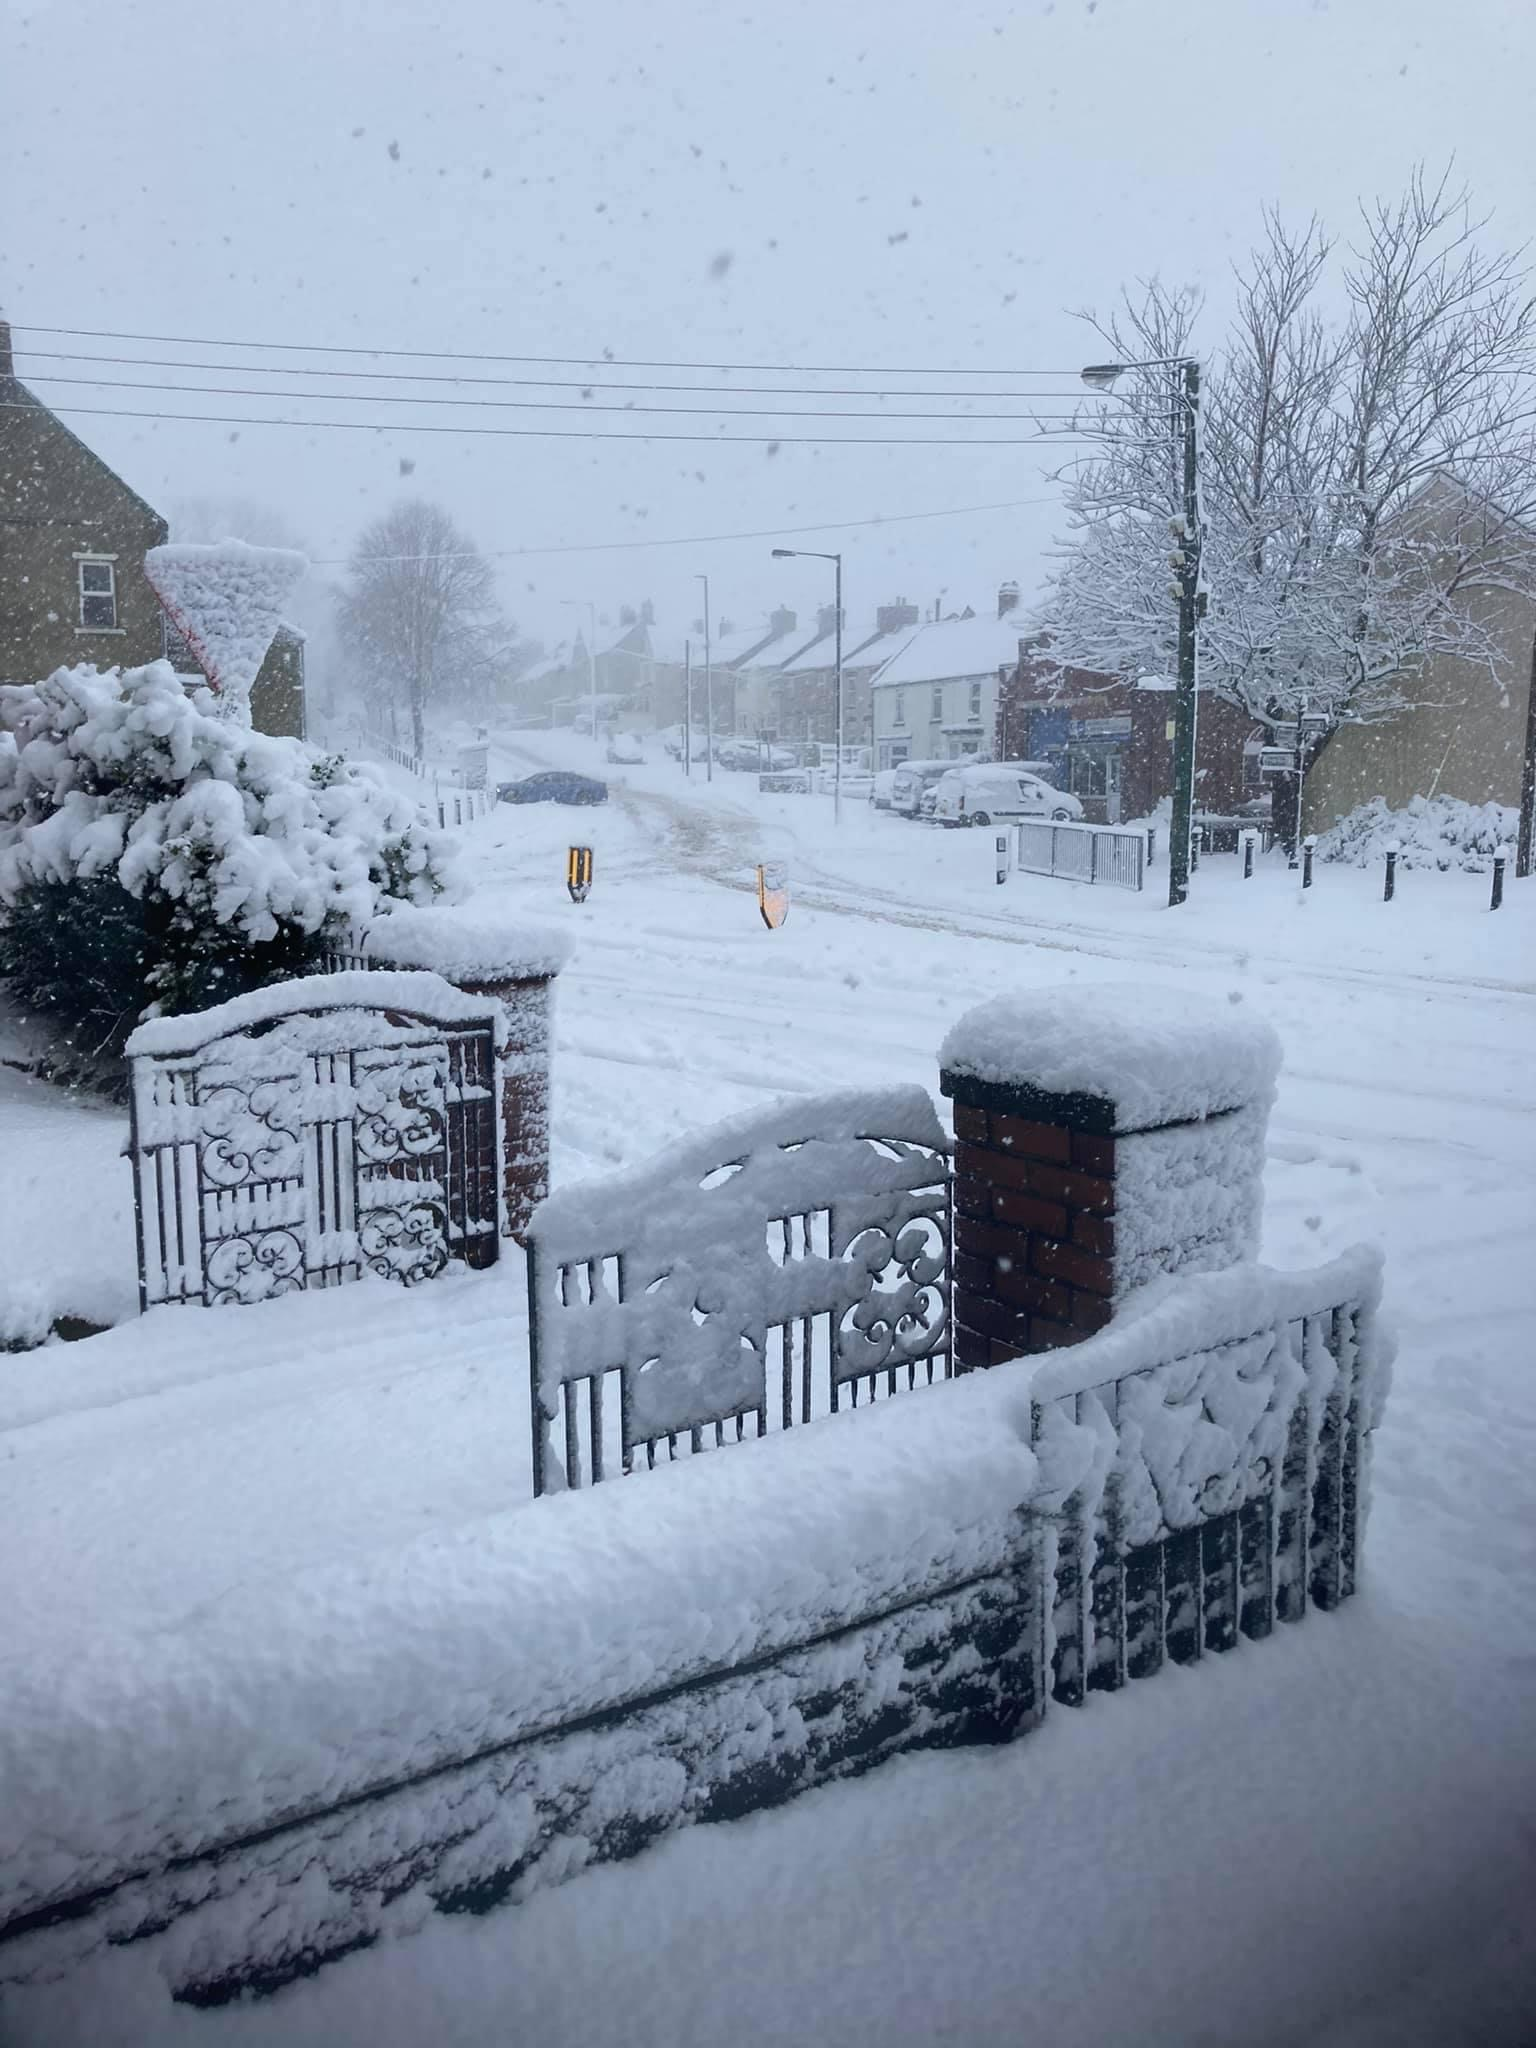 Heavy snow in Ferryhill on the morning of January 8th 2021.